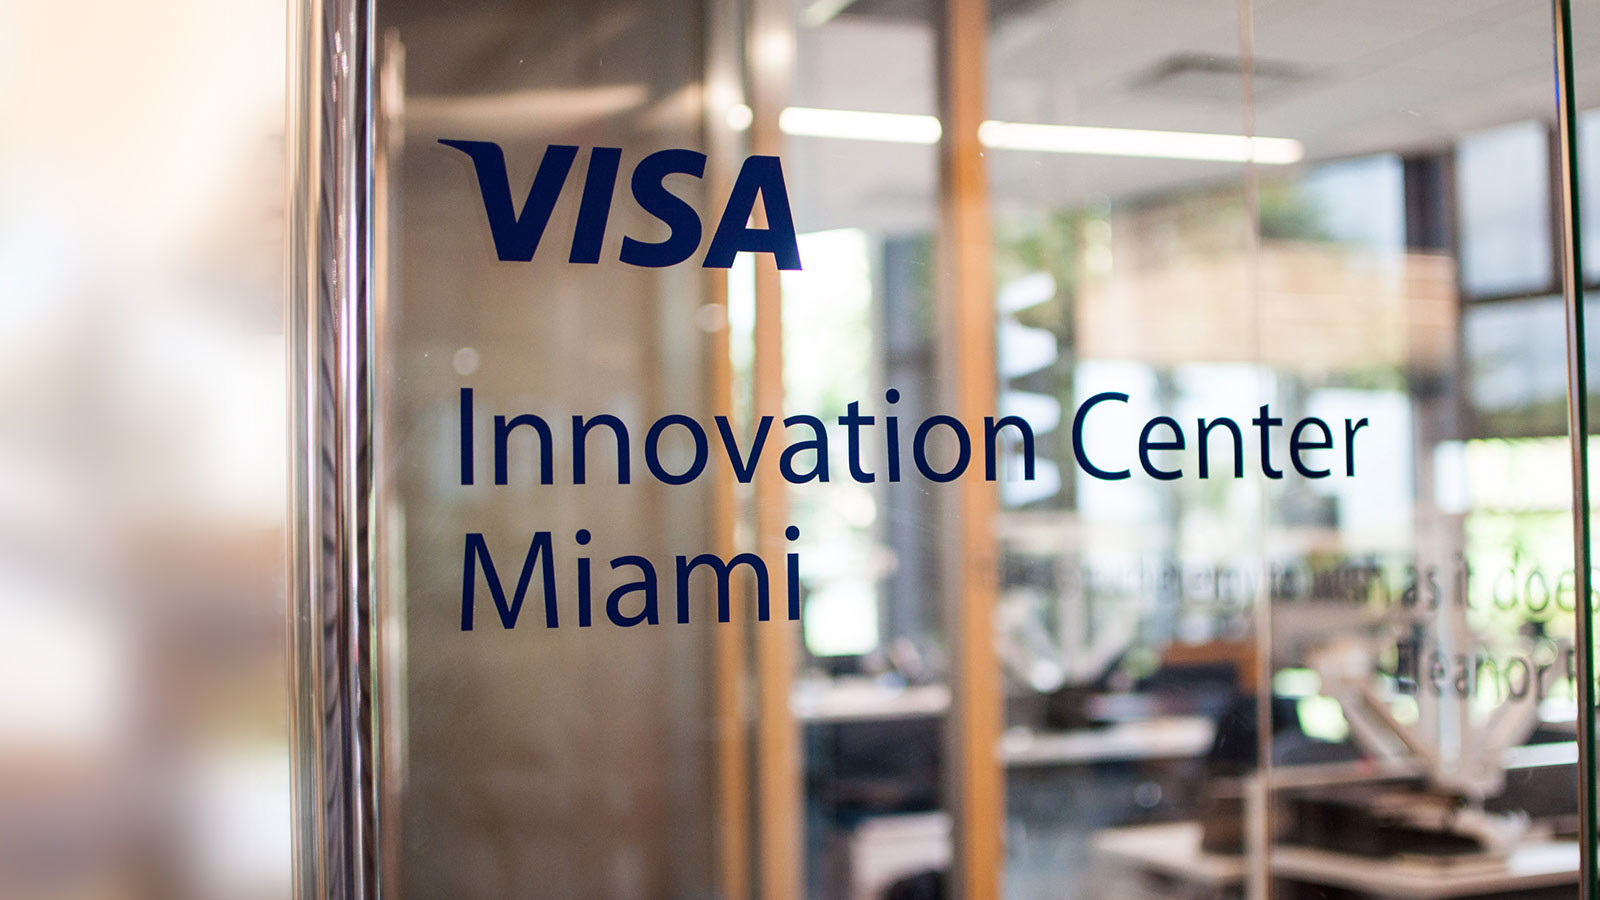 Visa Innovation Center Miami.